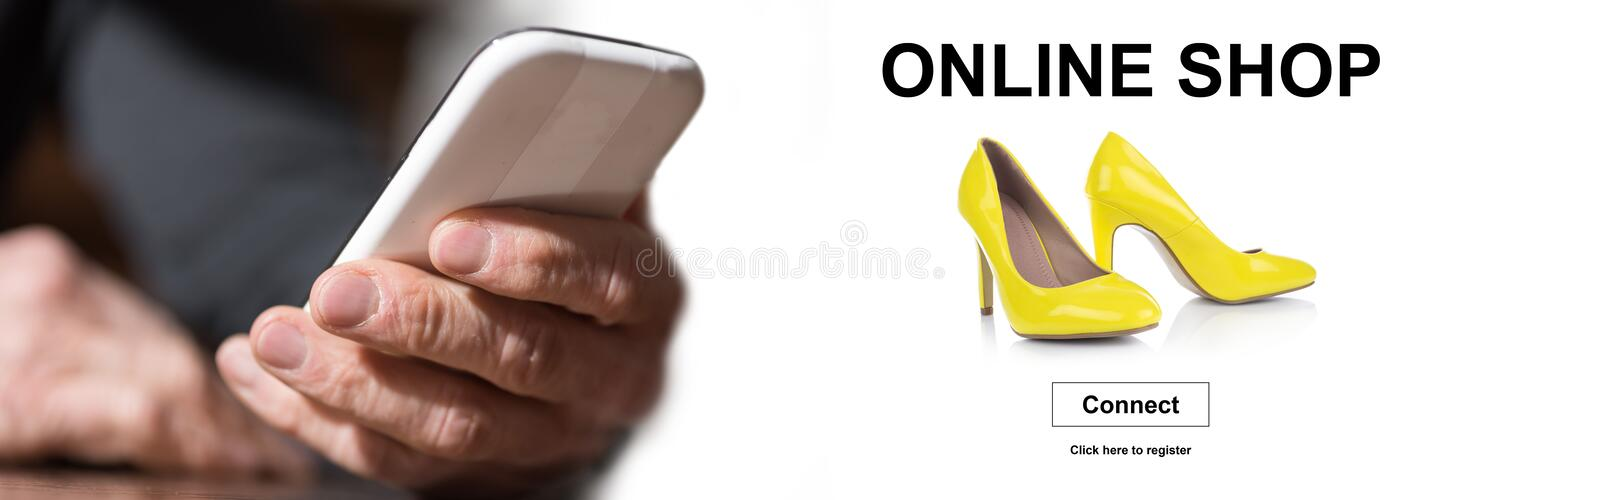 Concept of online shop royalty free stock photos